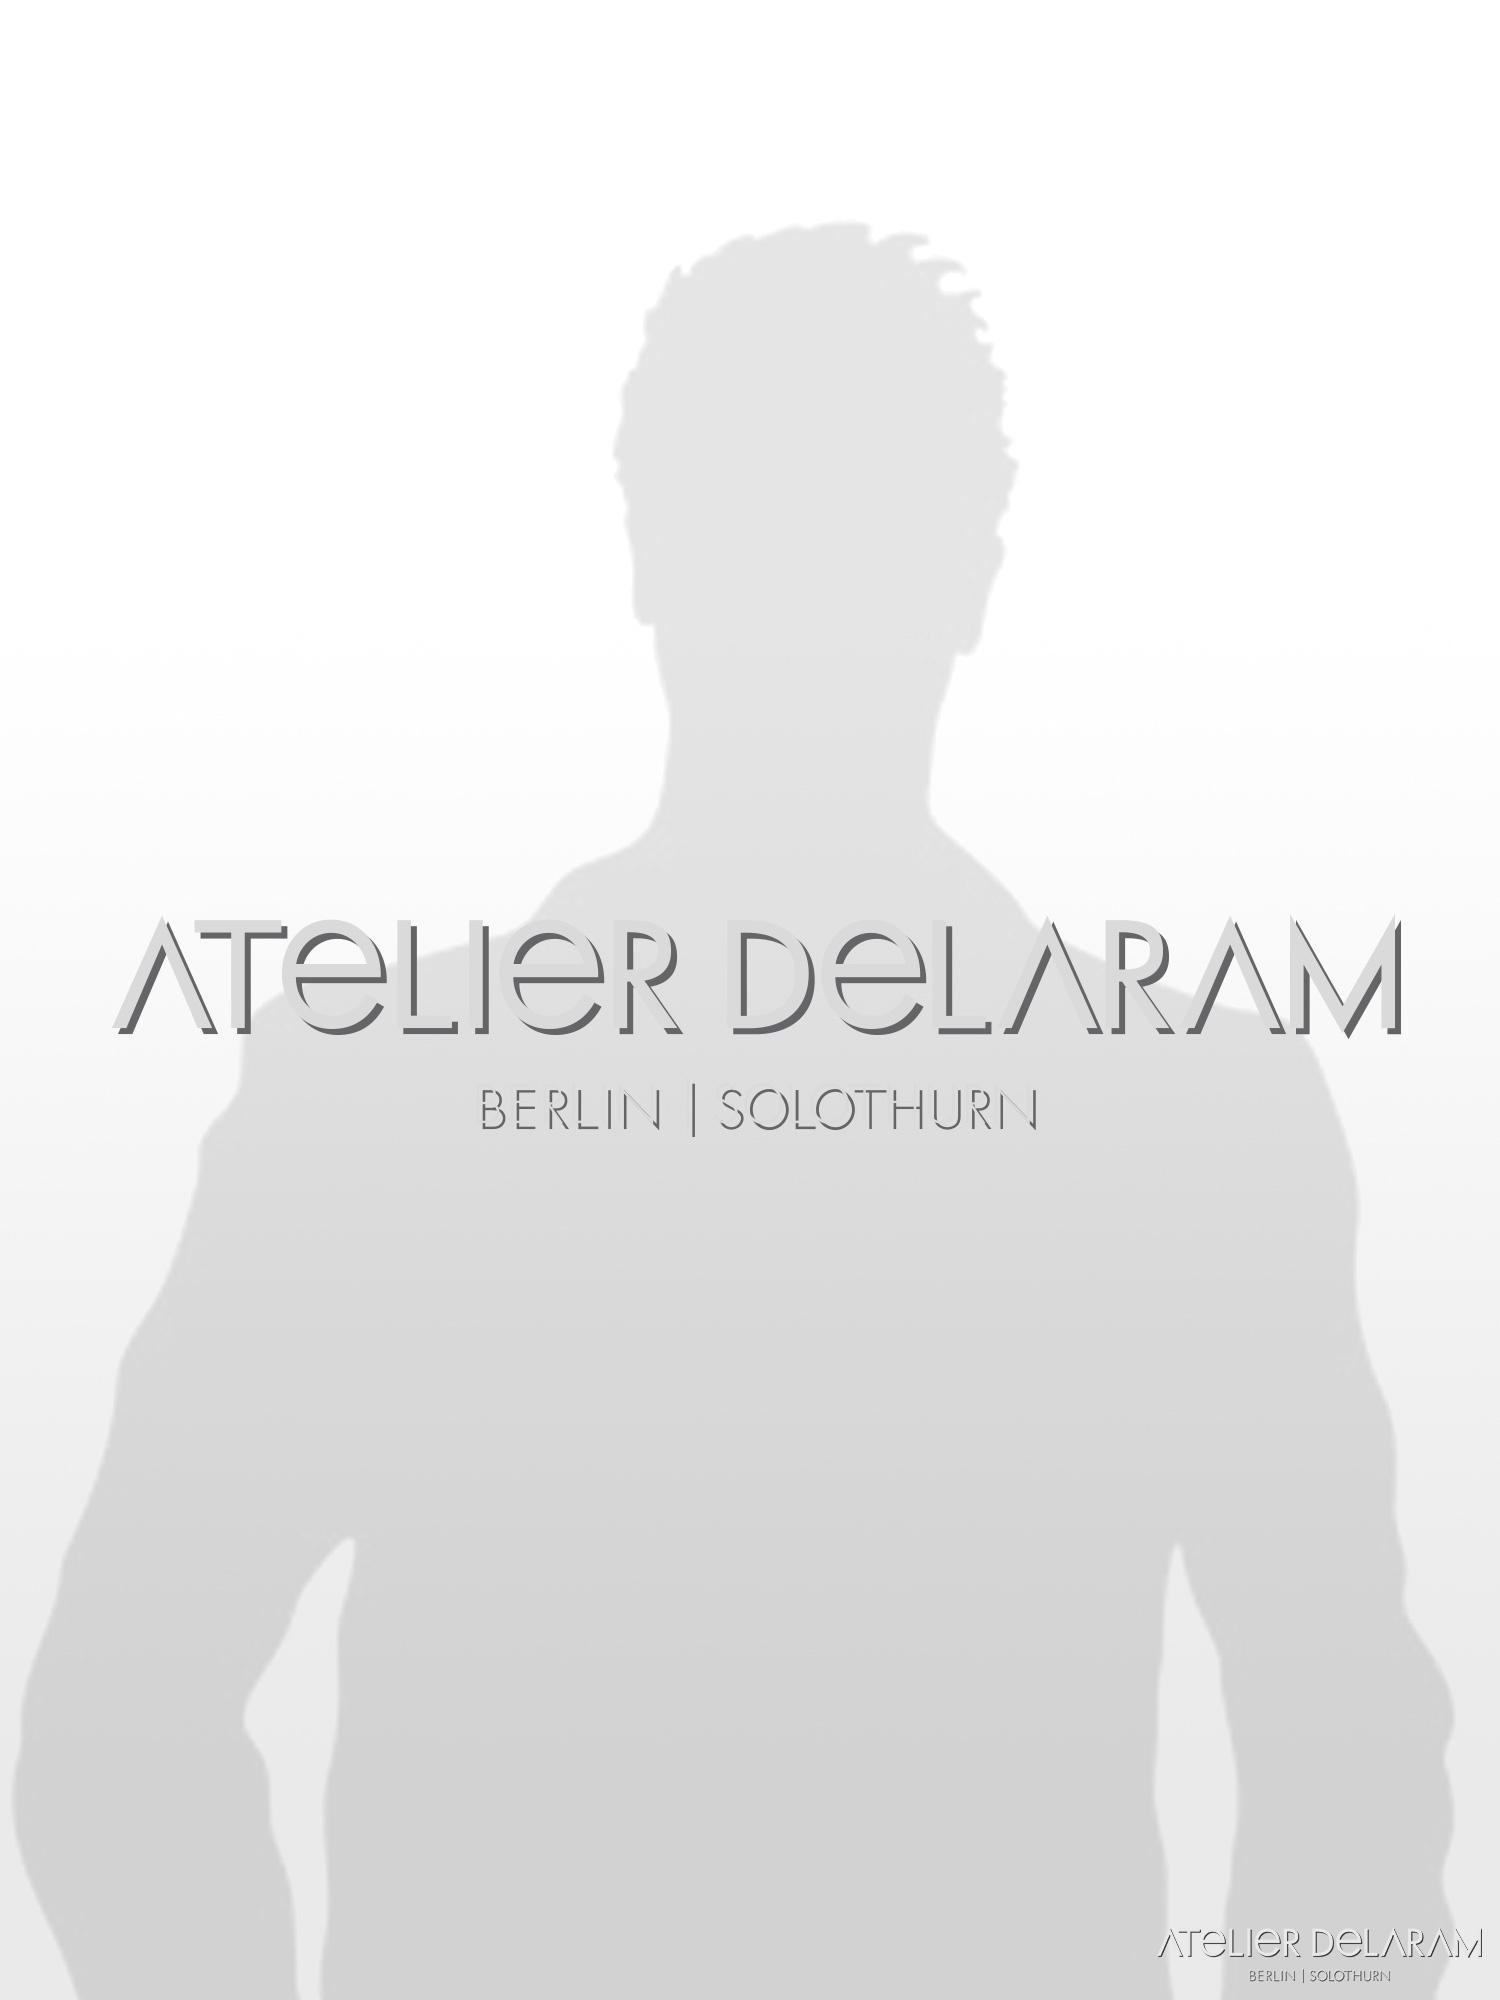 atelier_delaram_team_noimage_man